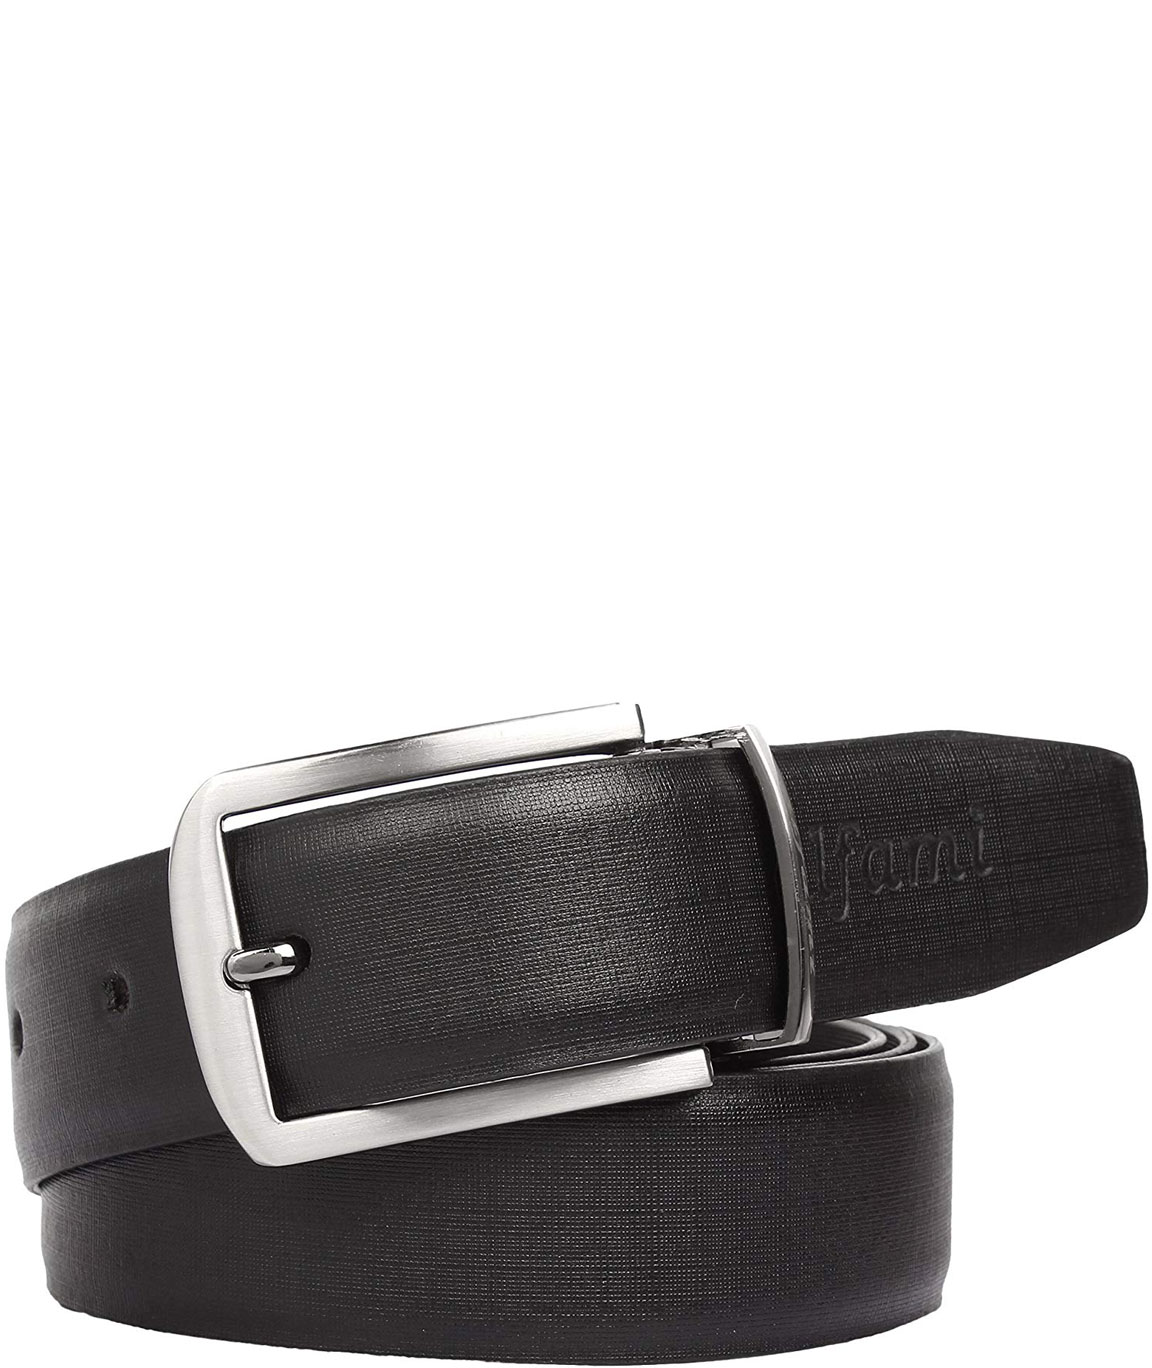 Urban Alfami Mens/Gents Genuine Leather Reversible Belt | Black/Brown | Formal/Casual/Party Wear | All Sizes | 1 Year Replacement Warranty